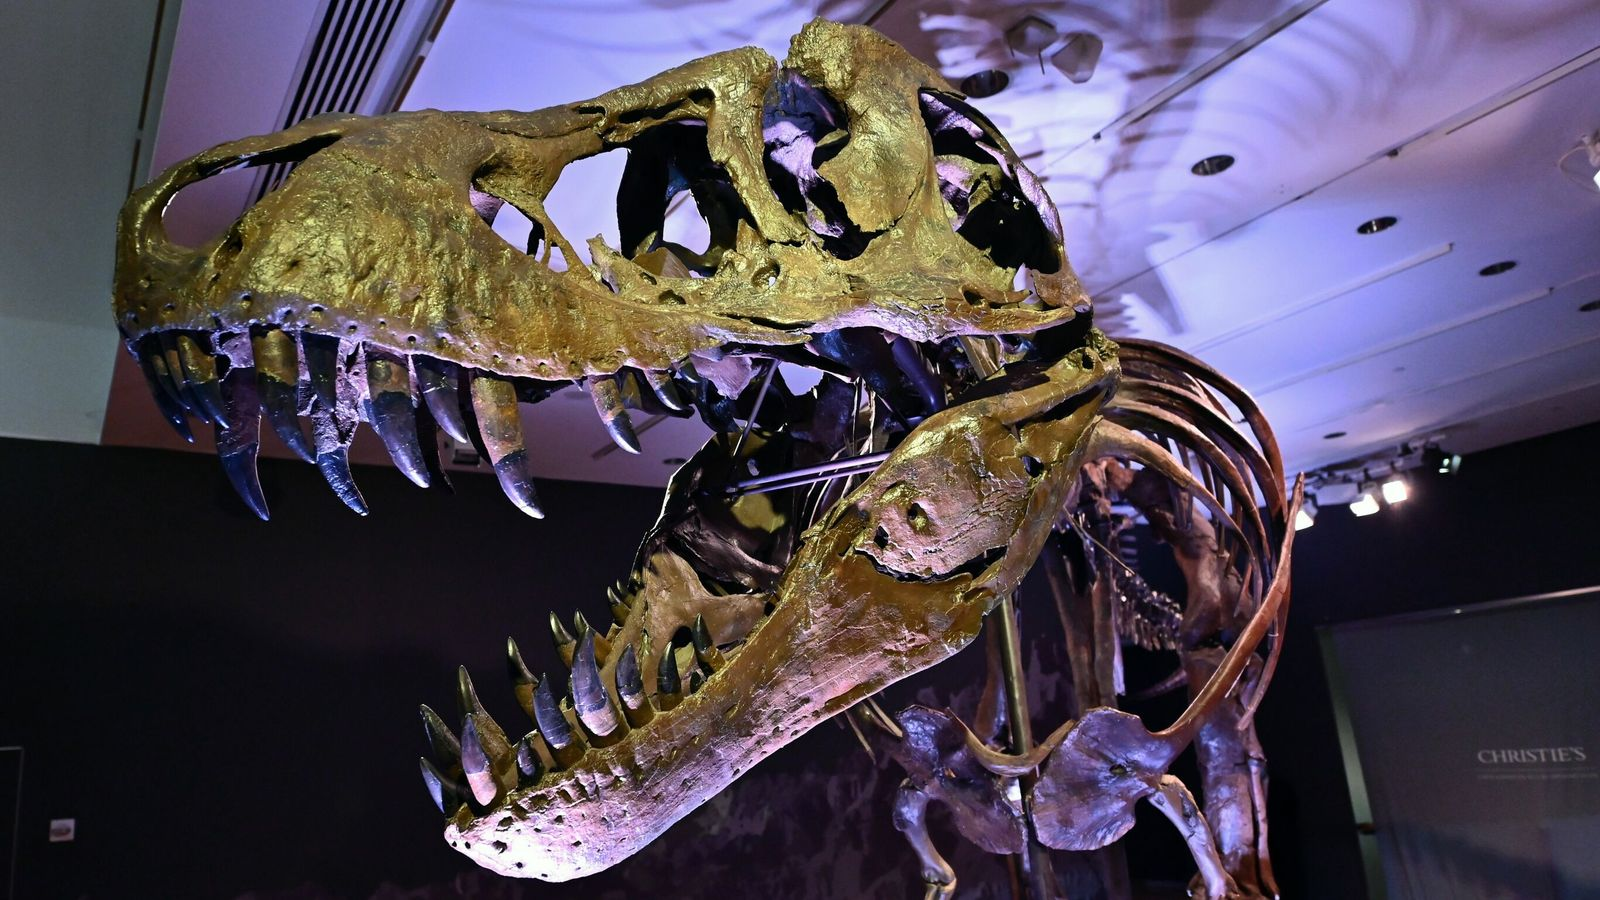 A study found that the mass extinction 233 million years ago paved the way for dinosaurs Science and Technology News